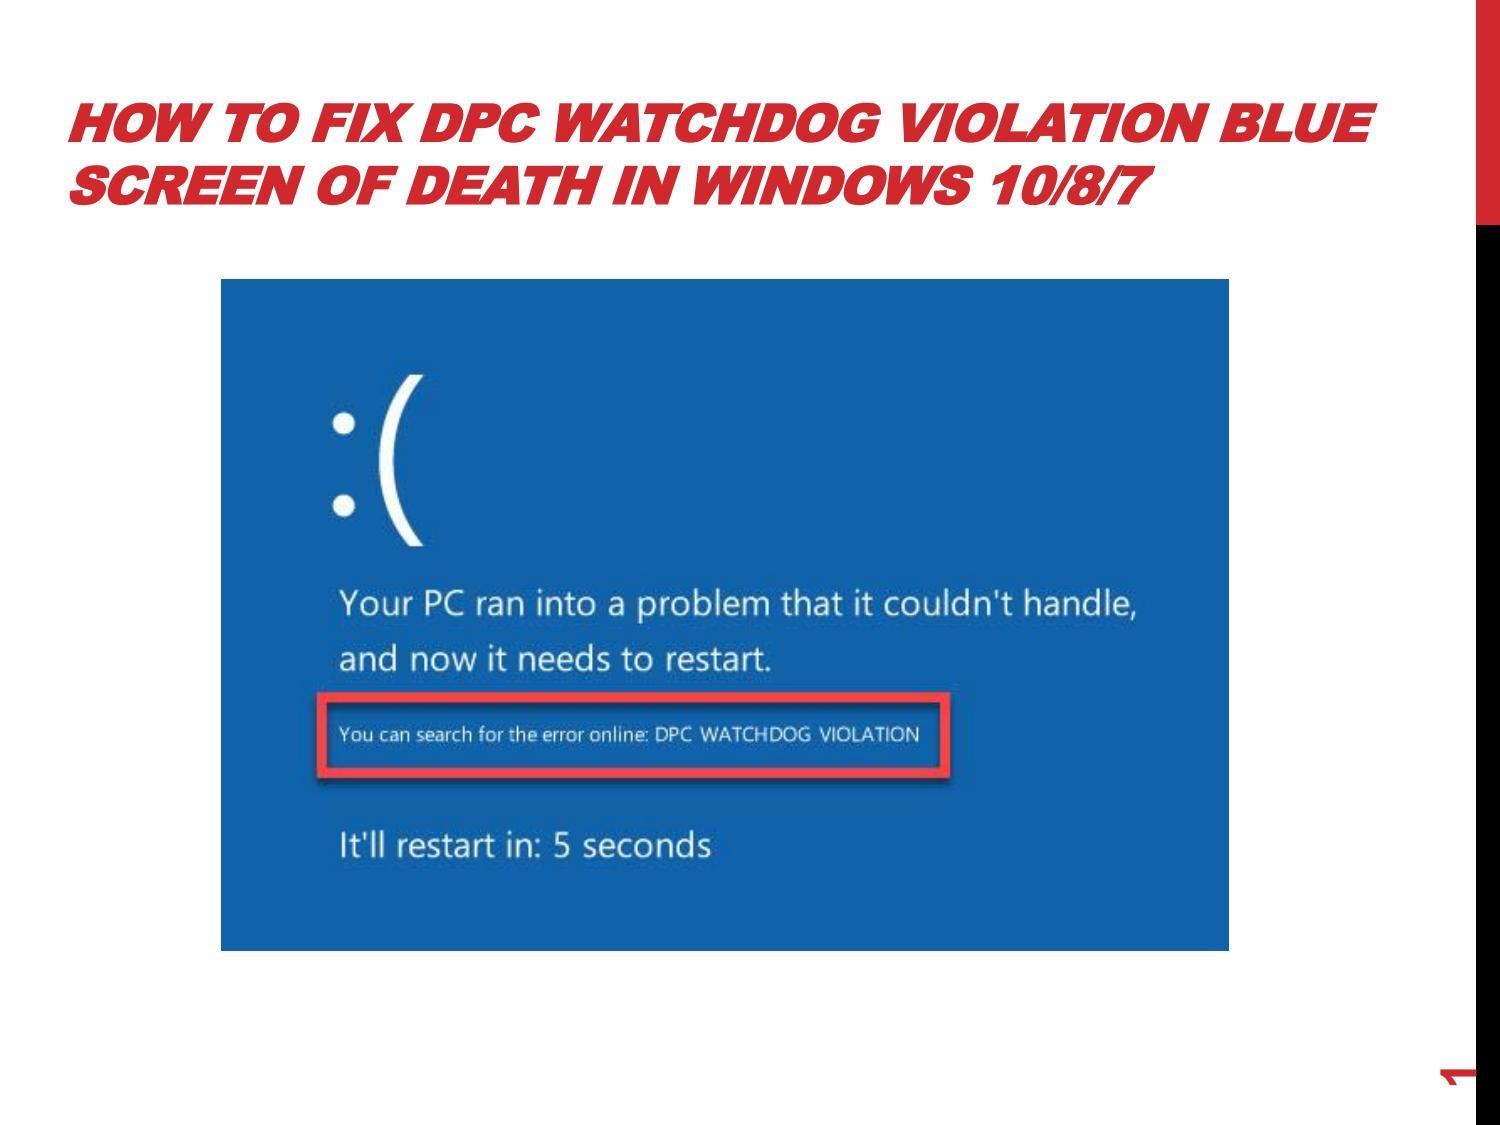 How To Fix DPC Watchdog Violation Blue Screen of Death in